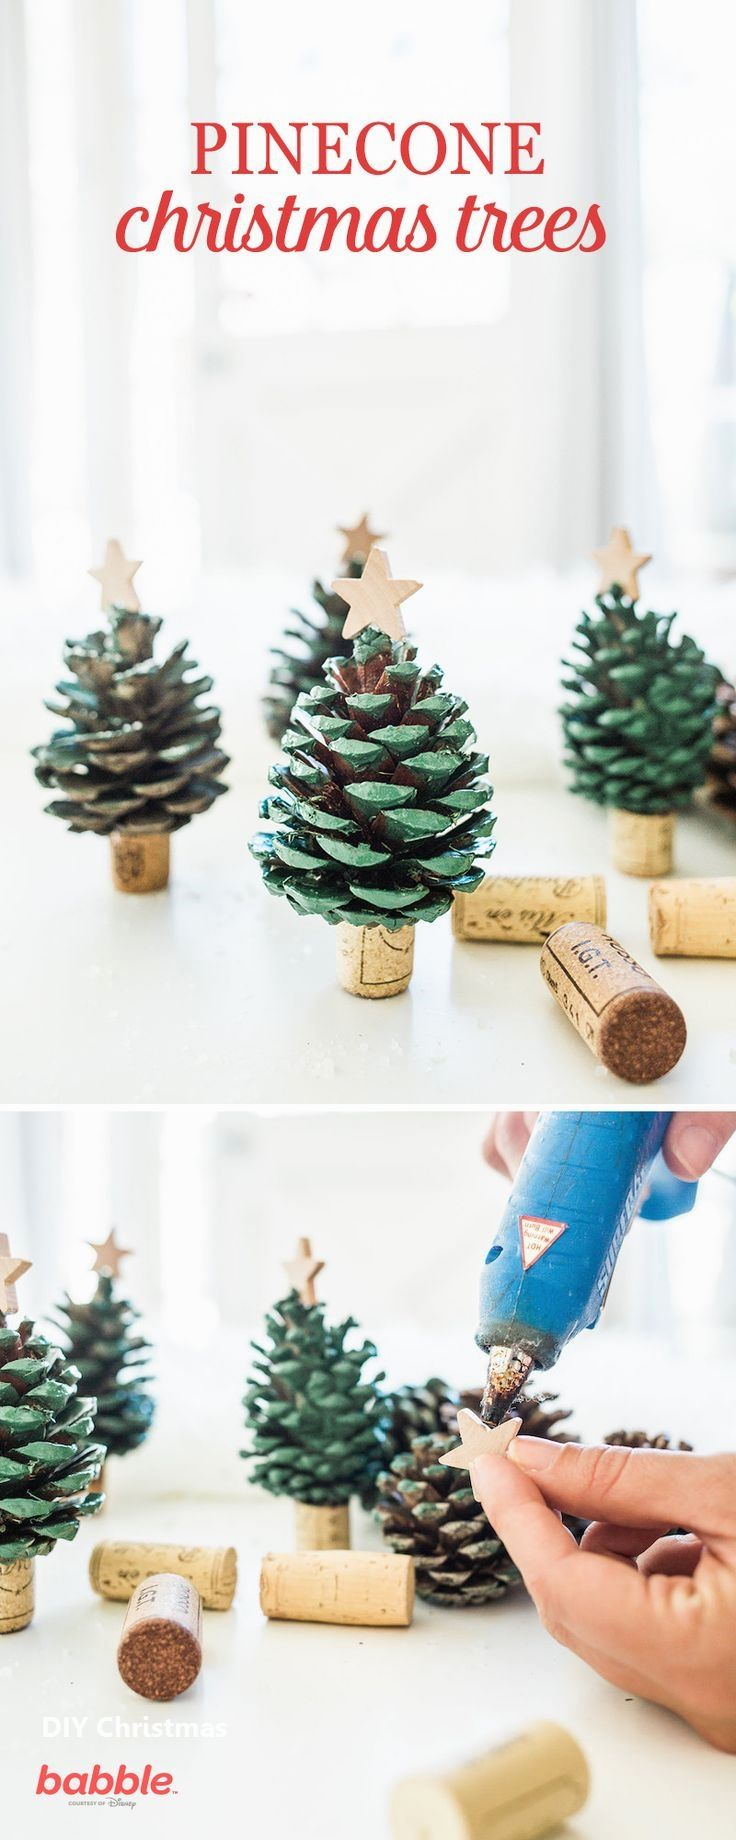 DIY Christmas 2020 Trends diychristmas Christmas decor